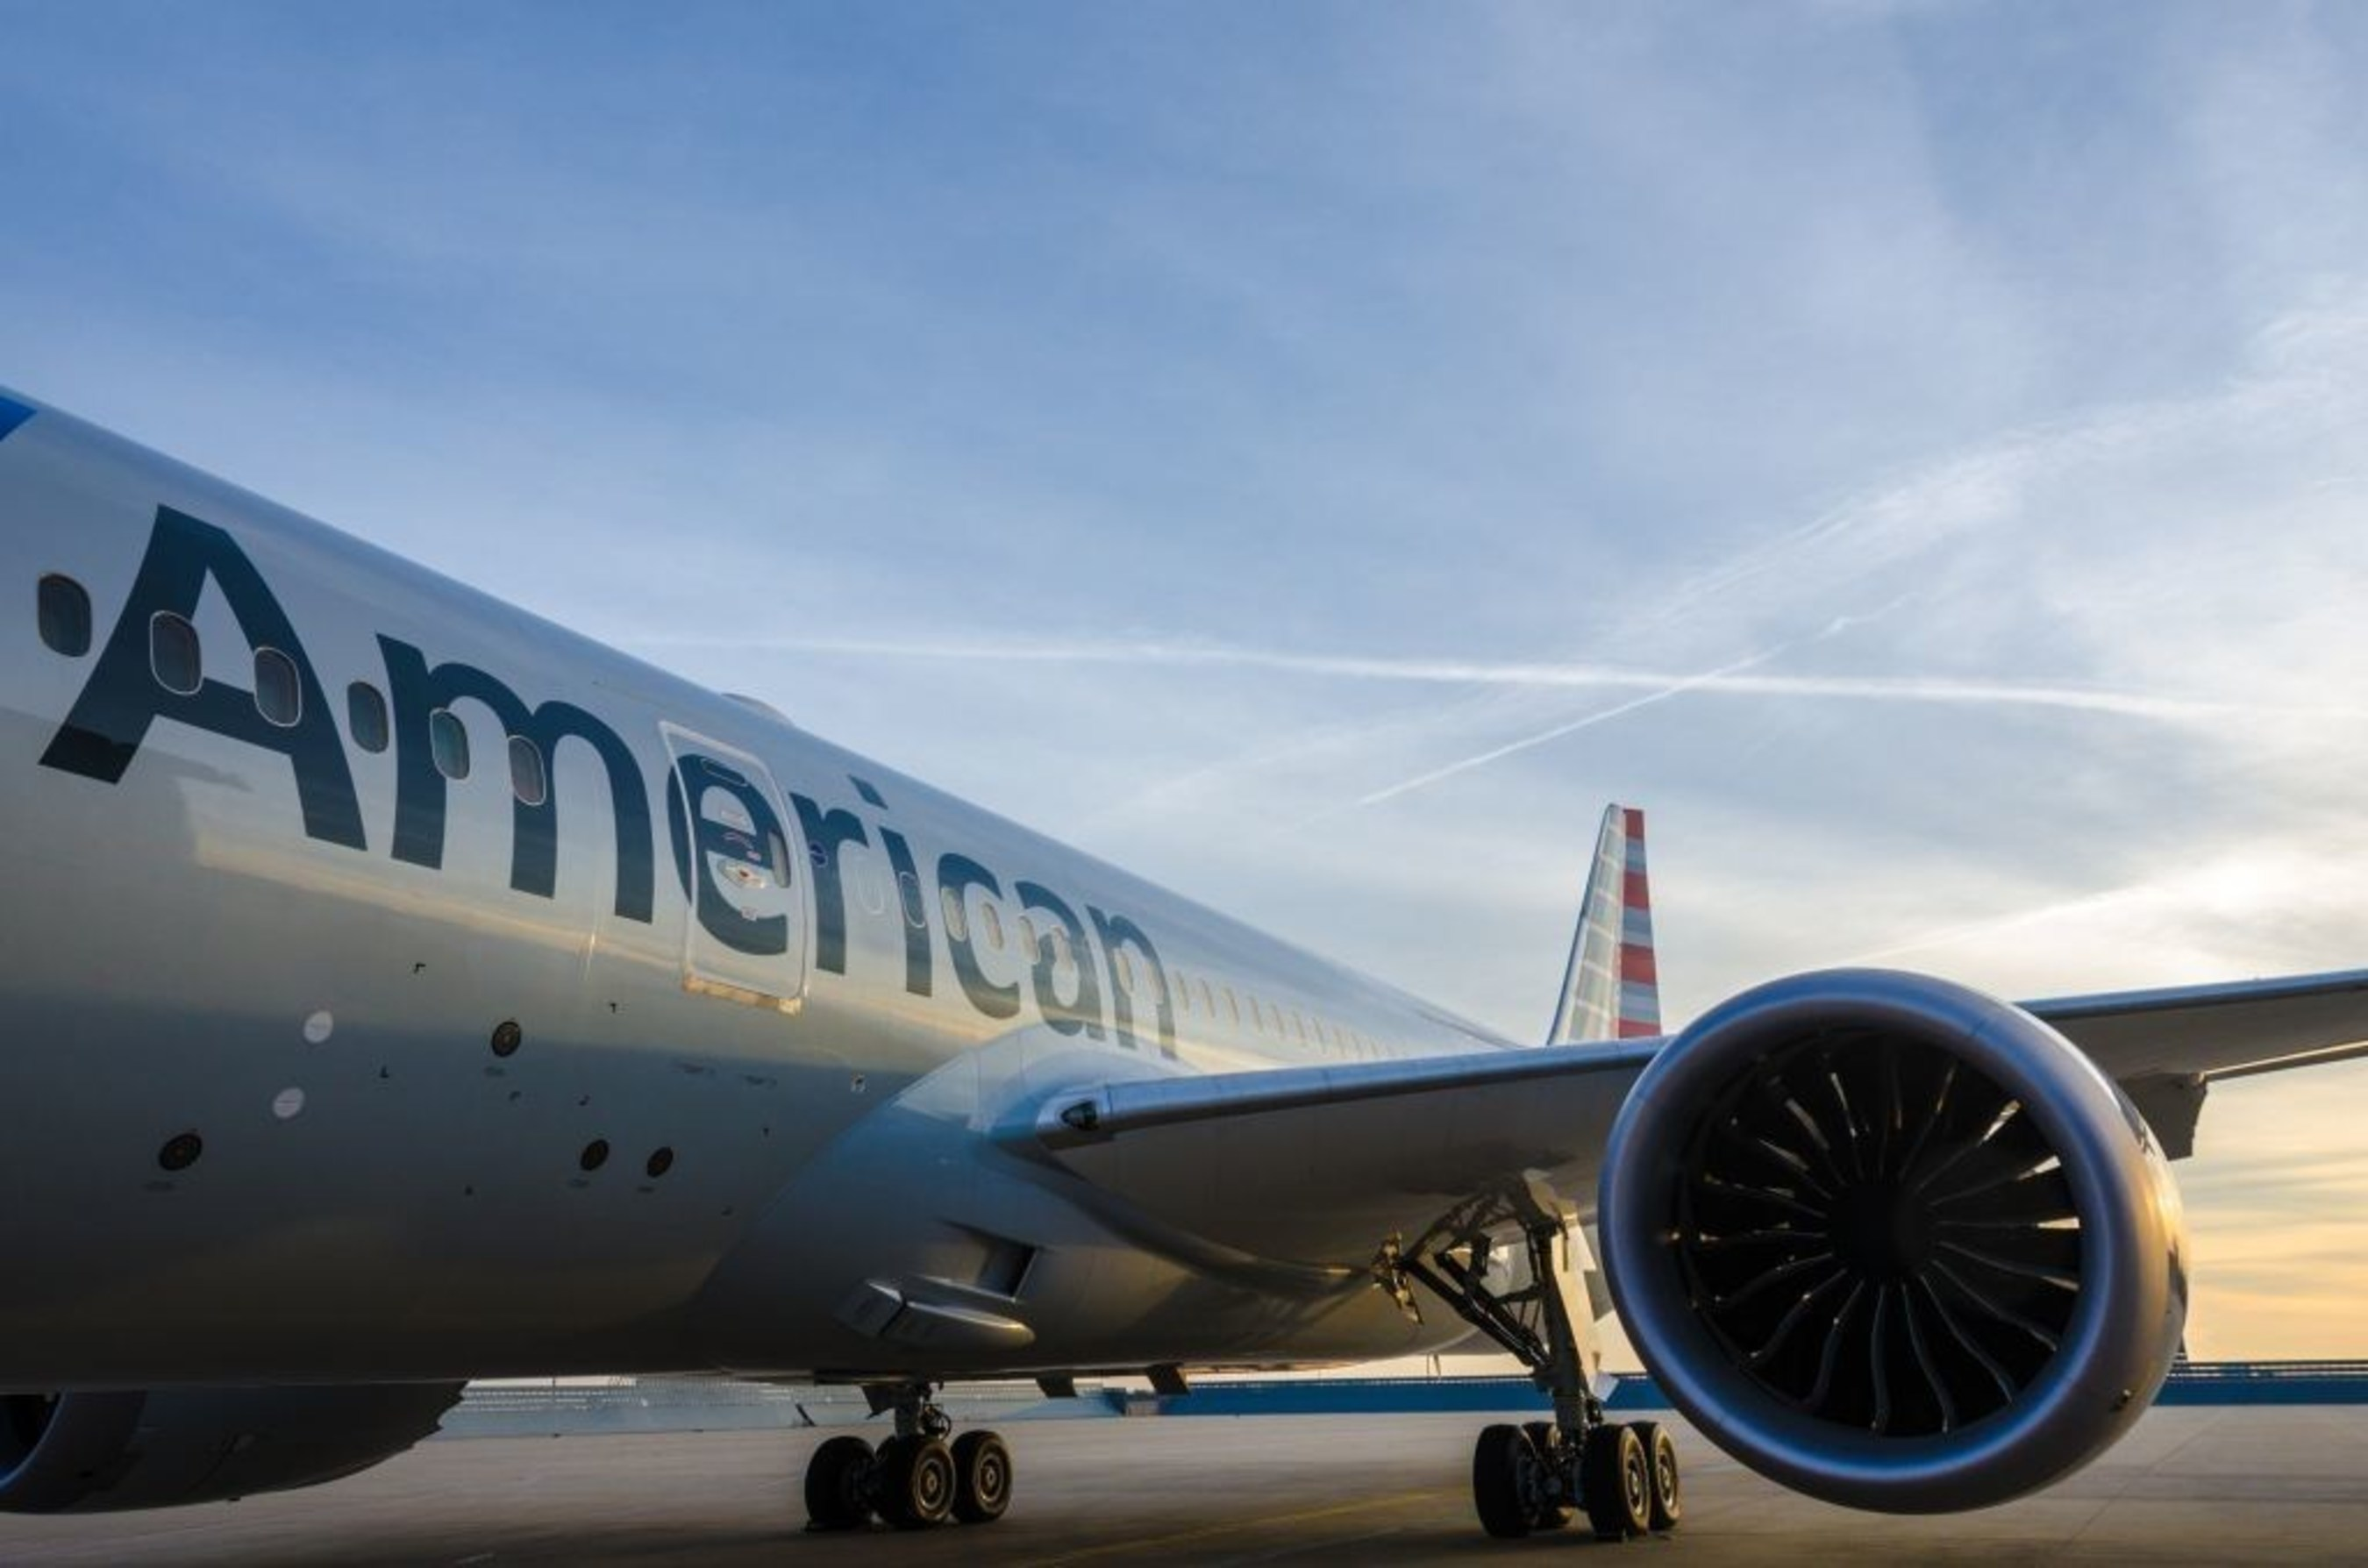 AMERICAN AIRLINES 787 EXTERIOR